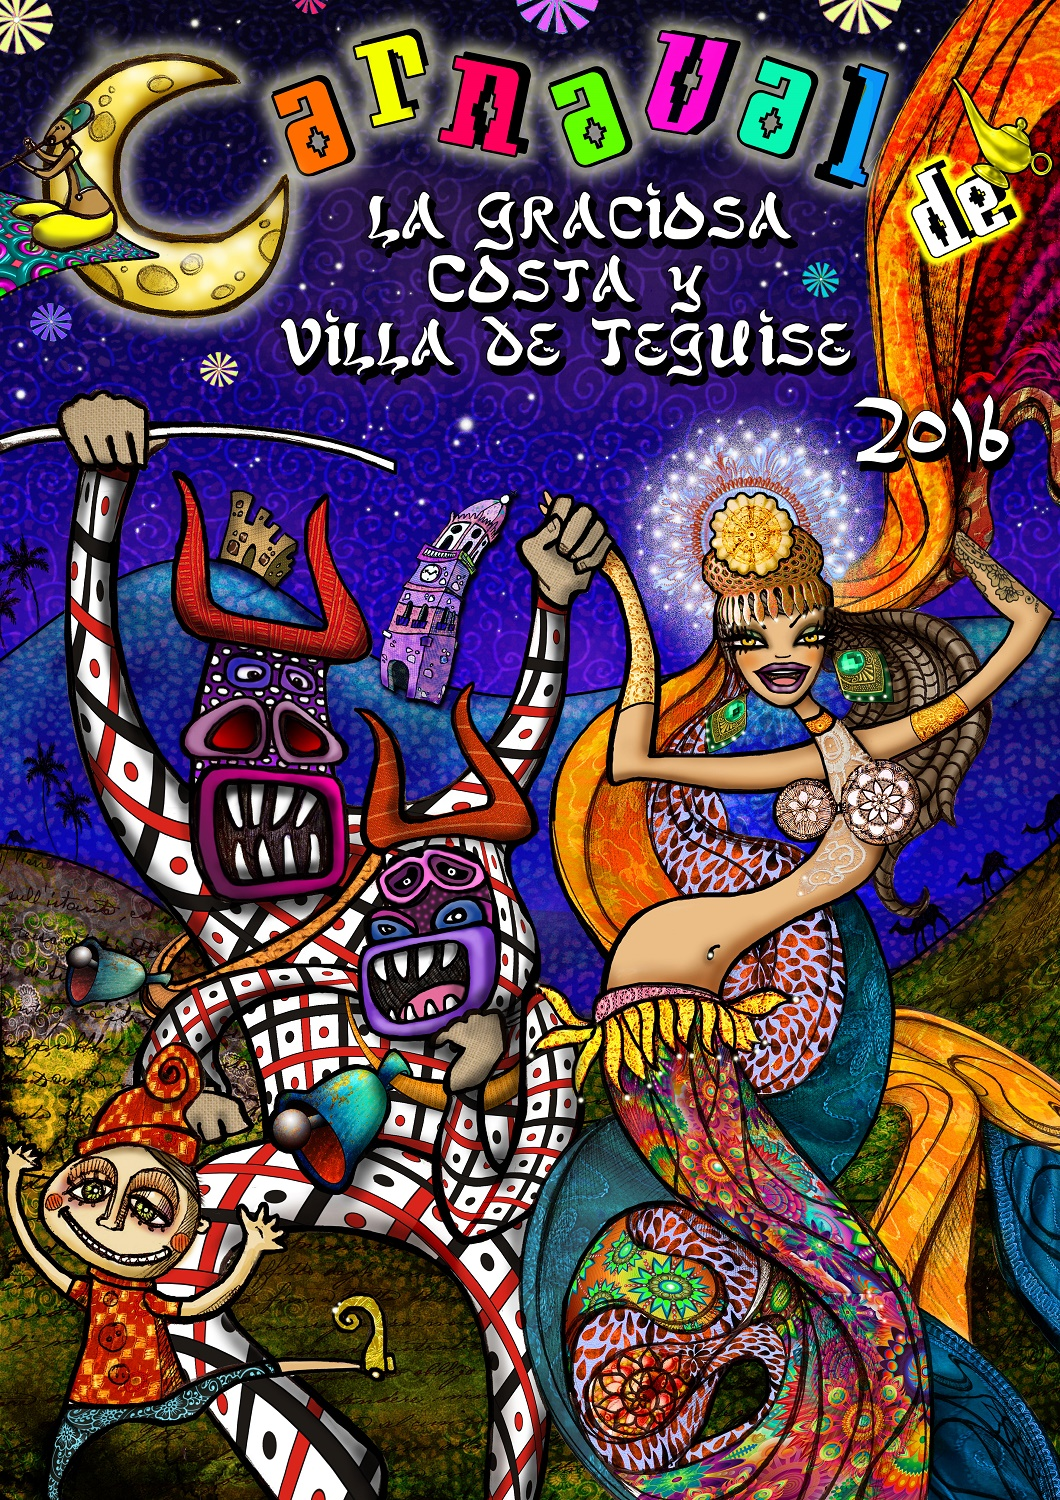 Cartel carnaval Costa Teguise 2016